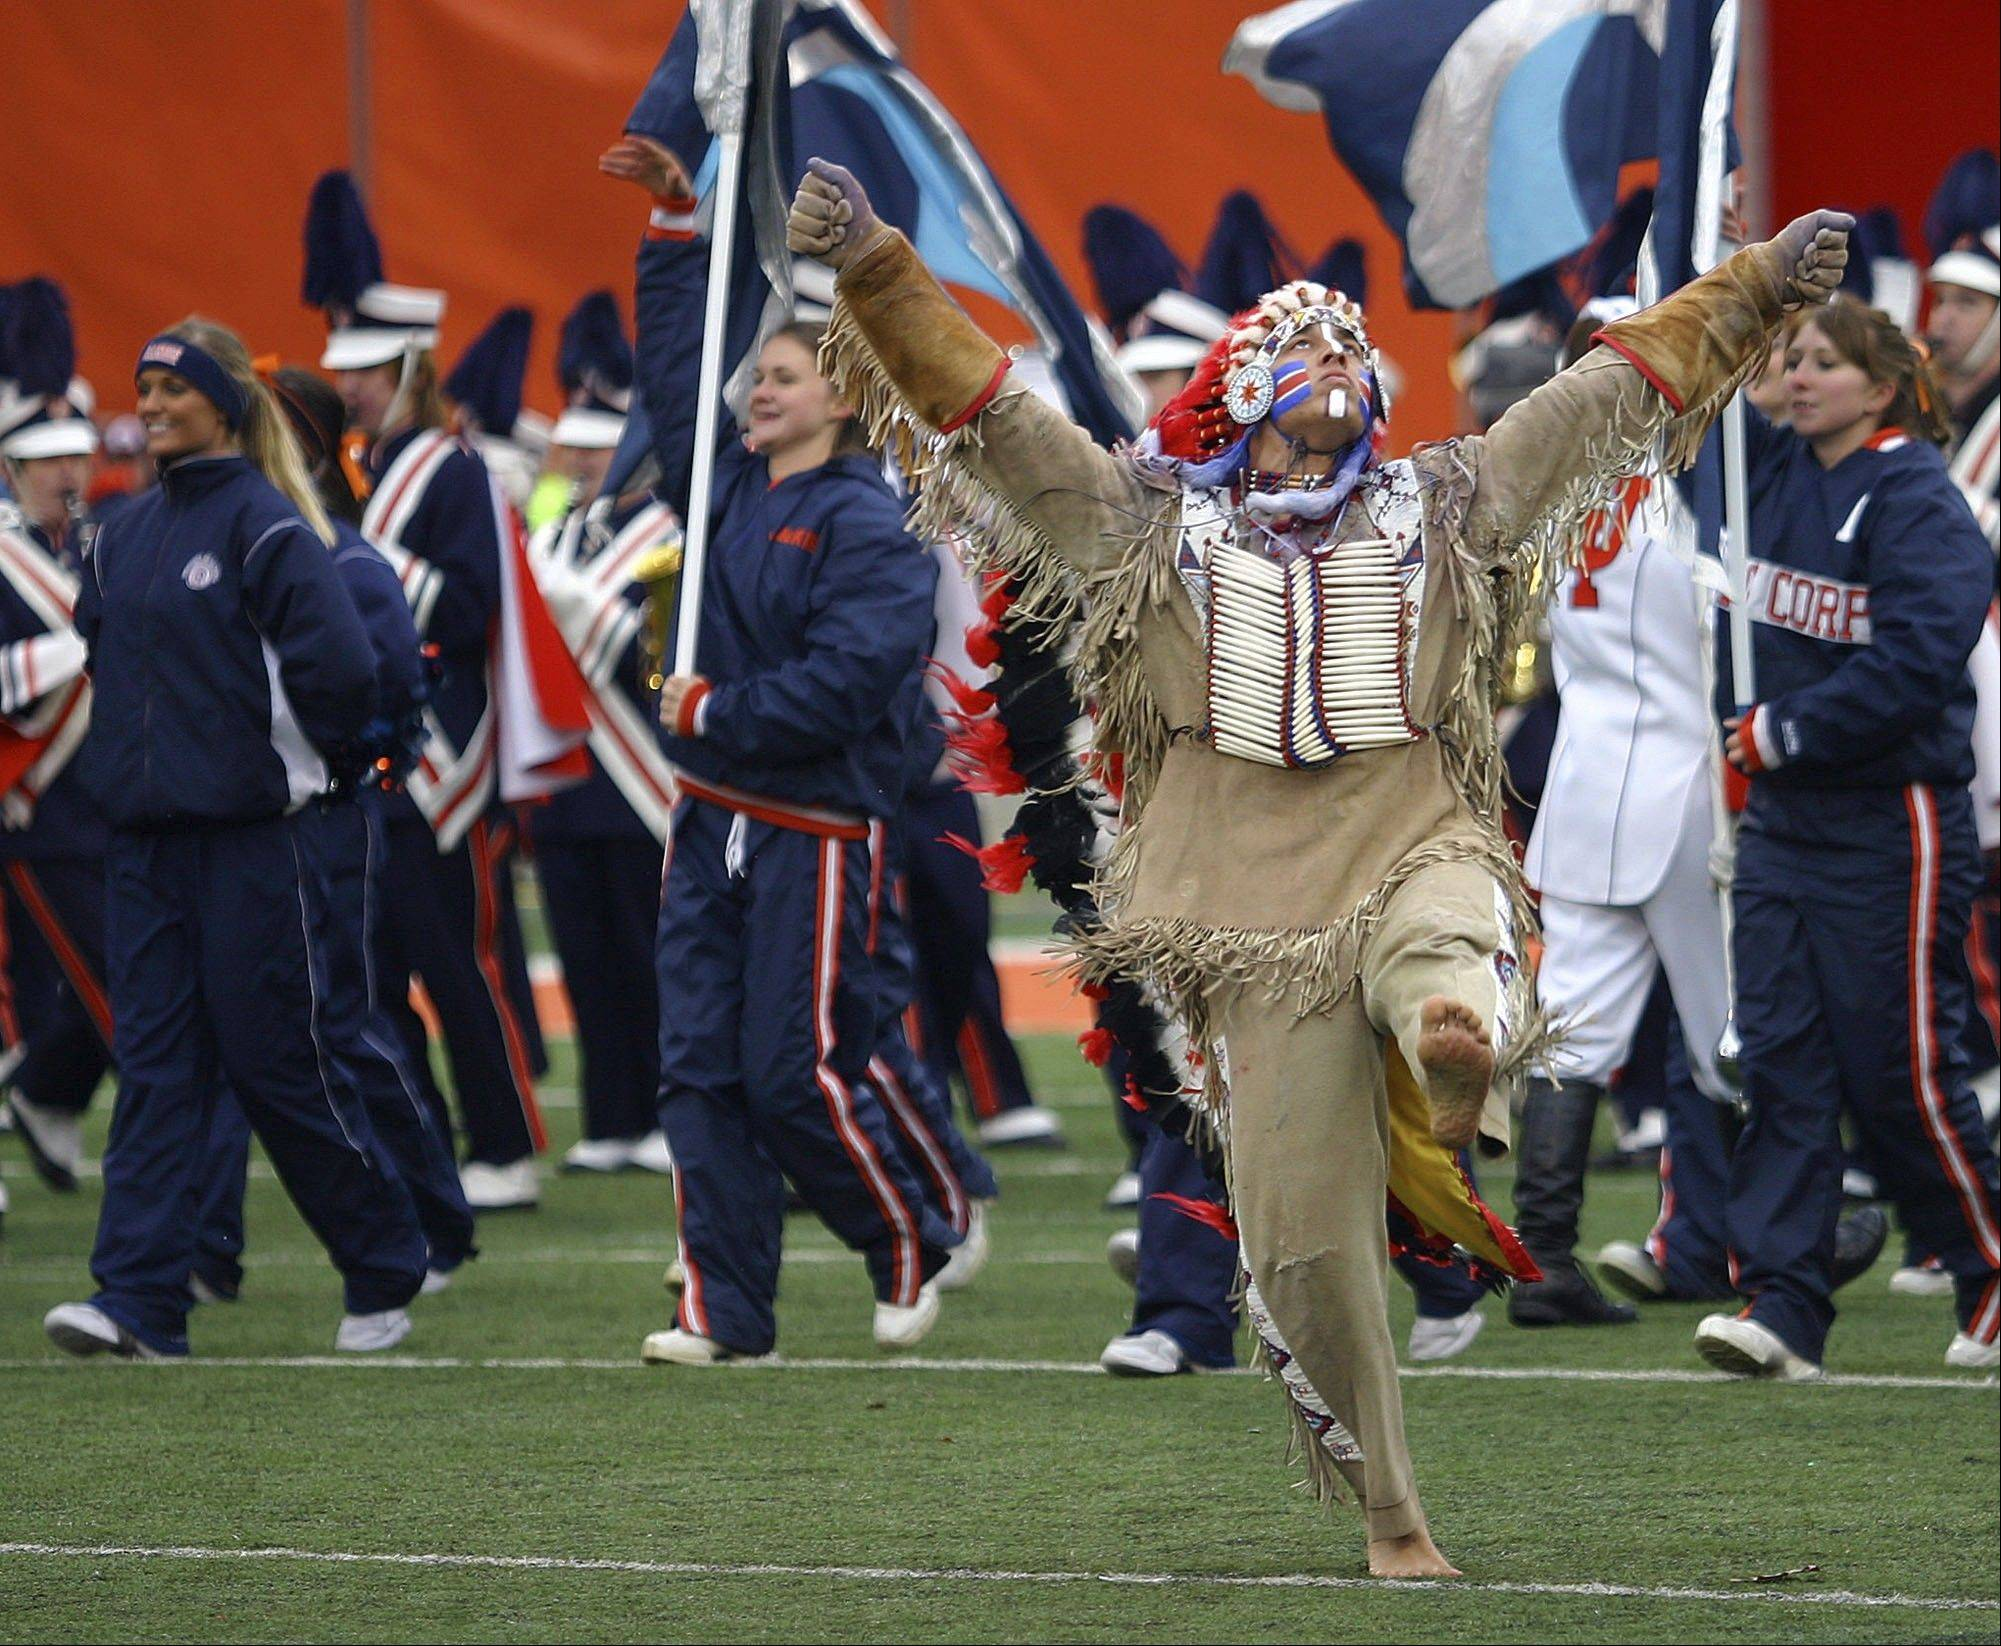 Perception, not intent, relegates Chief Illiniwek to history